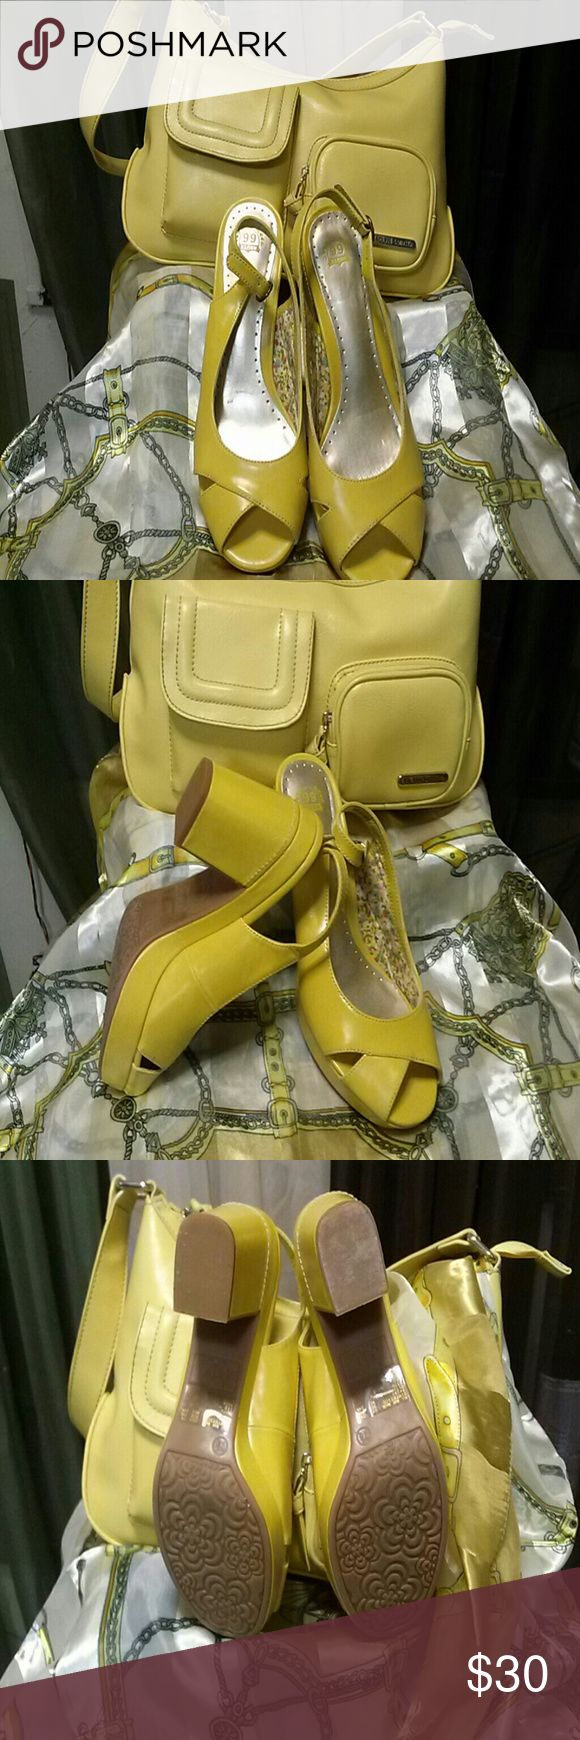 SHOES $15 AND  HANDBAG $15 or TOGETHER $35 YELLOW SLING BACK PLATFORMS/ HANDBAG  Route 66 /Jacklyn Smith Shoes Heels